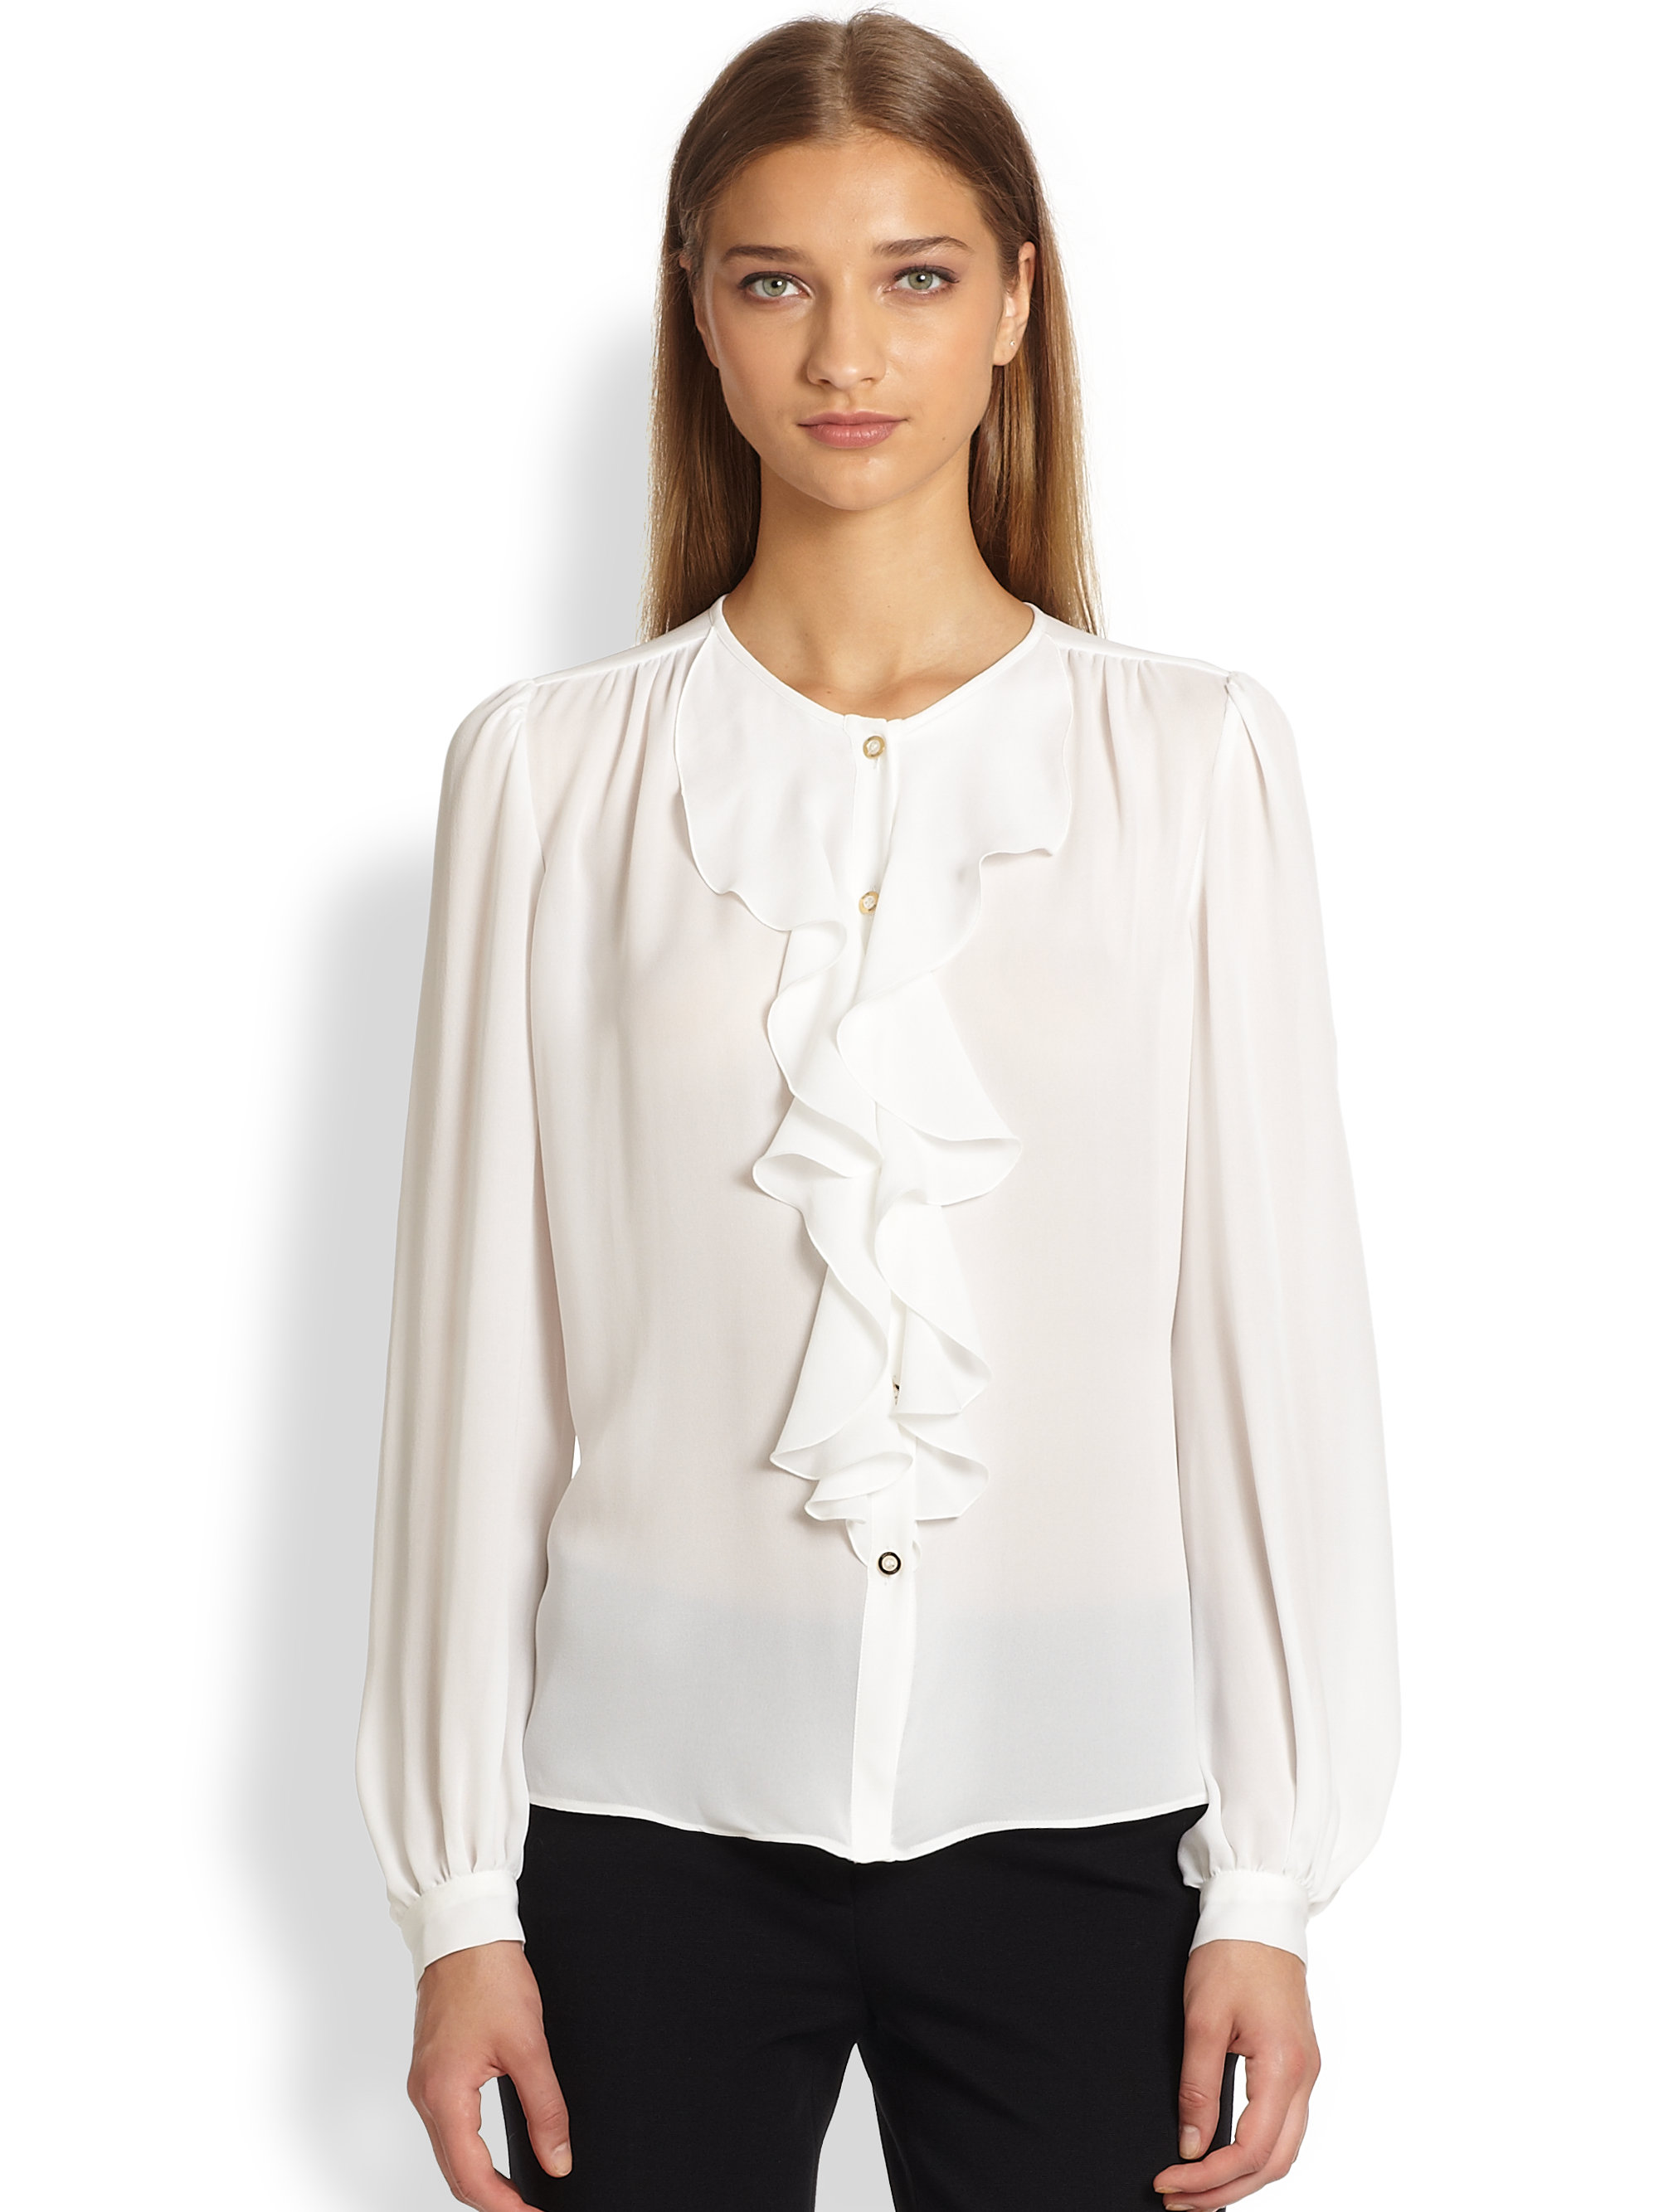 Shop women's blouses at shopnow-ahoqsxpv.ga Discover a stylish selection of the latest brand name and designer fashions all at a great value.